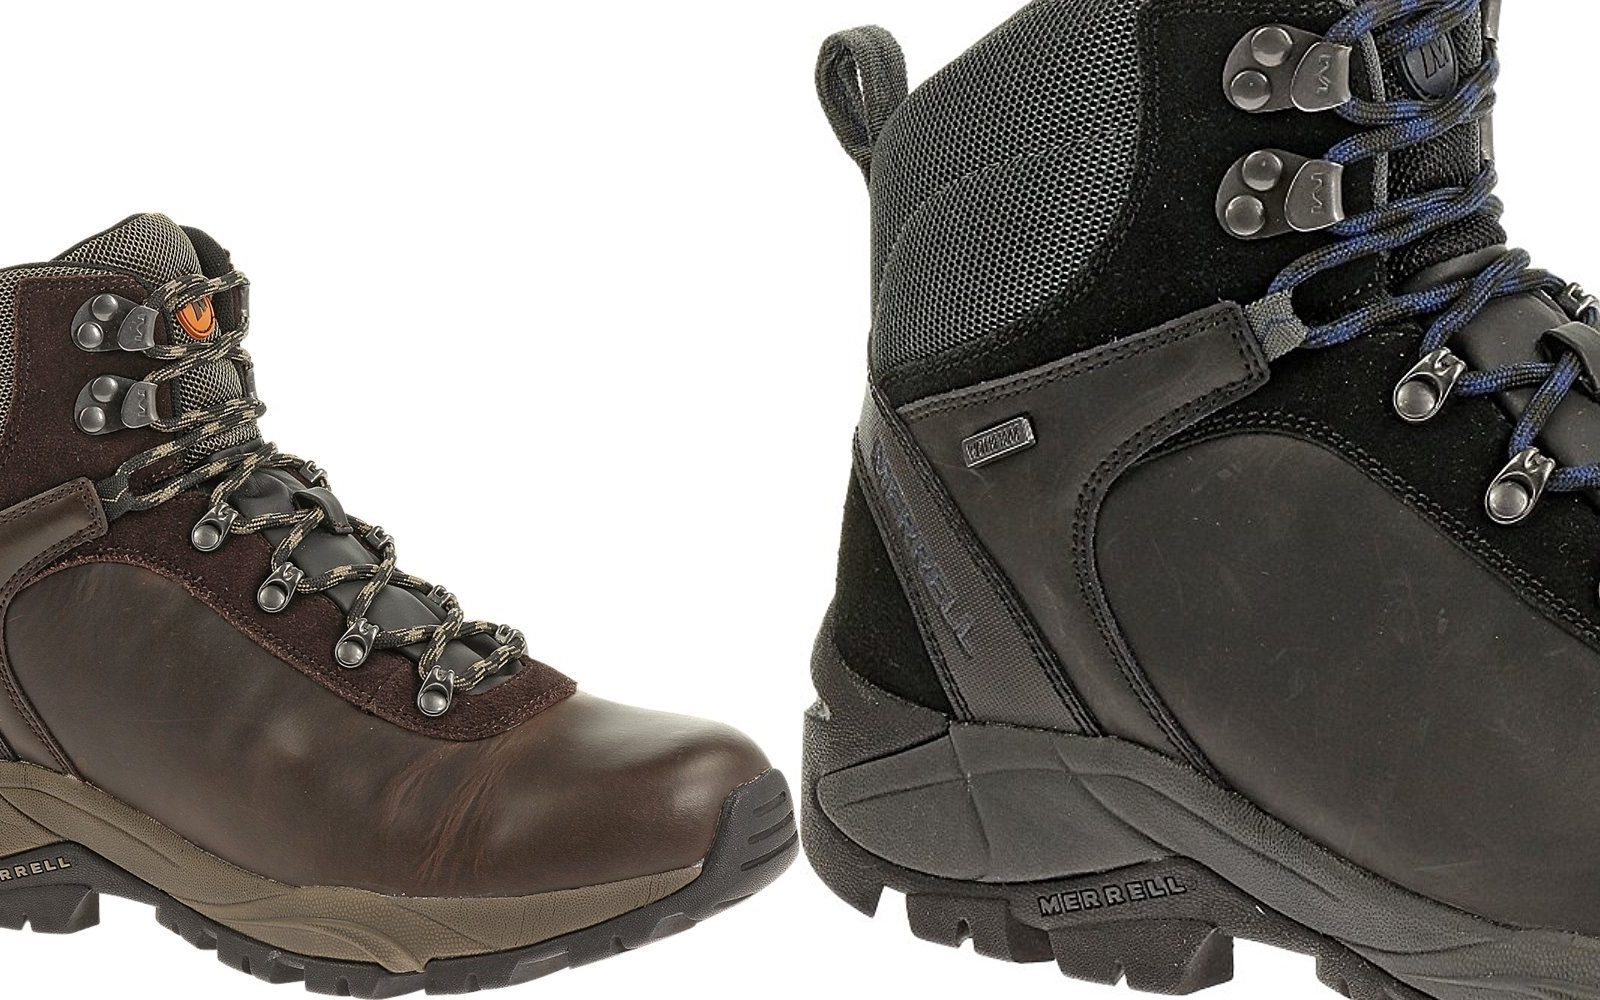 83110e4c3152 Time to gear up for winter w Merrell Parkton Trekker Waterproof boots in  black and brown   50 shipped